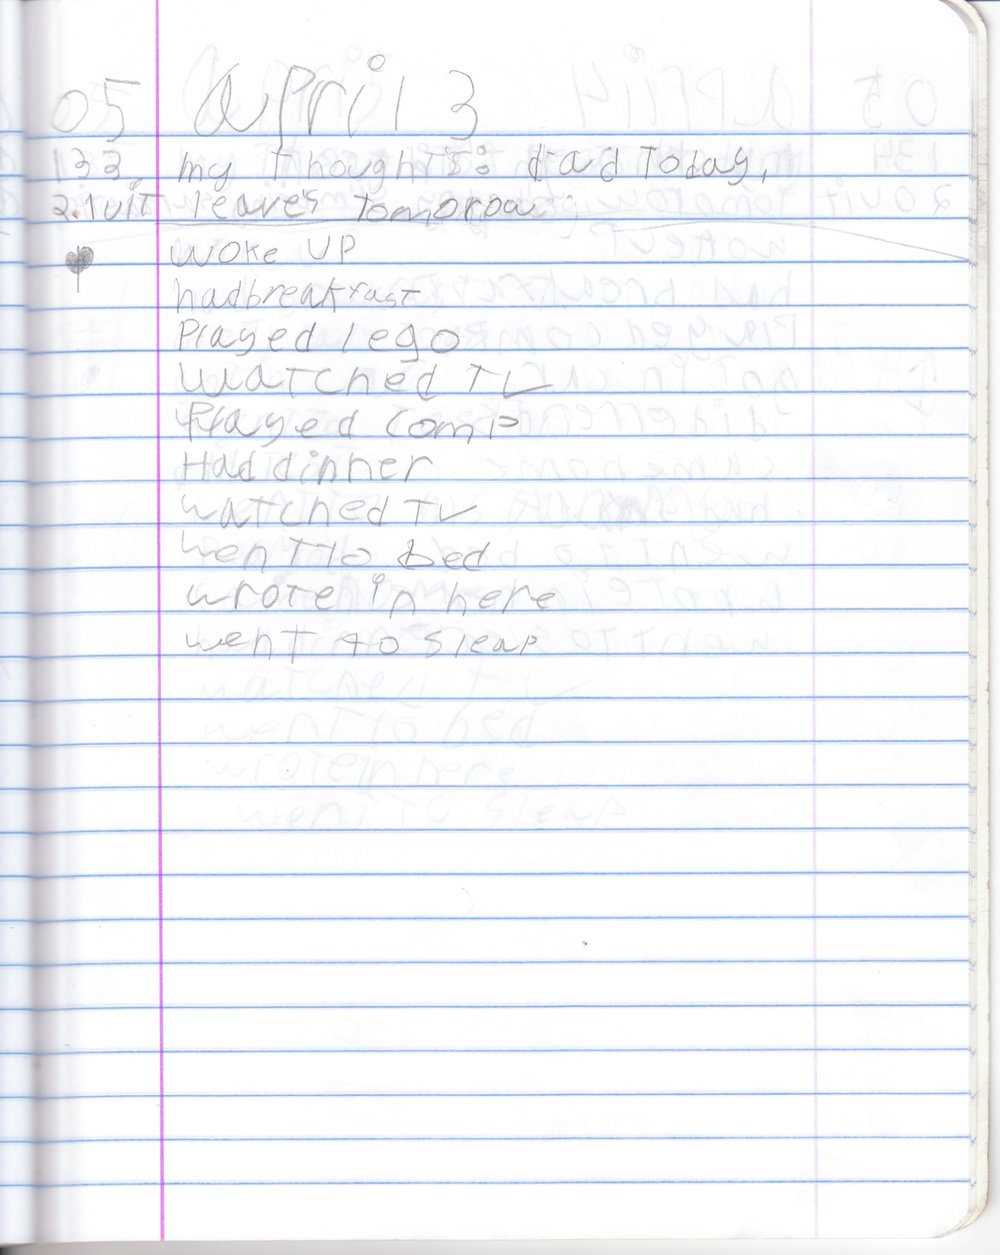 my first diary-log_Page_175.jpg